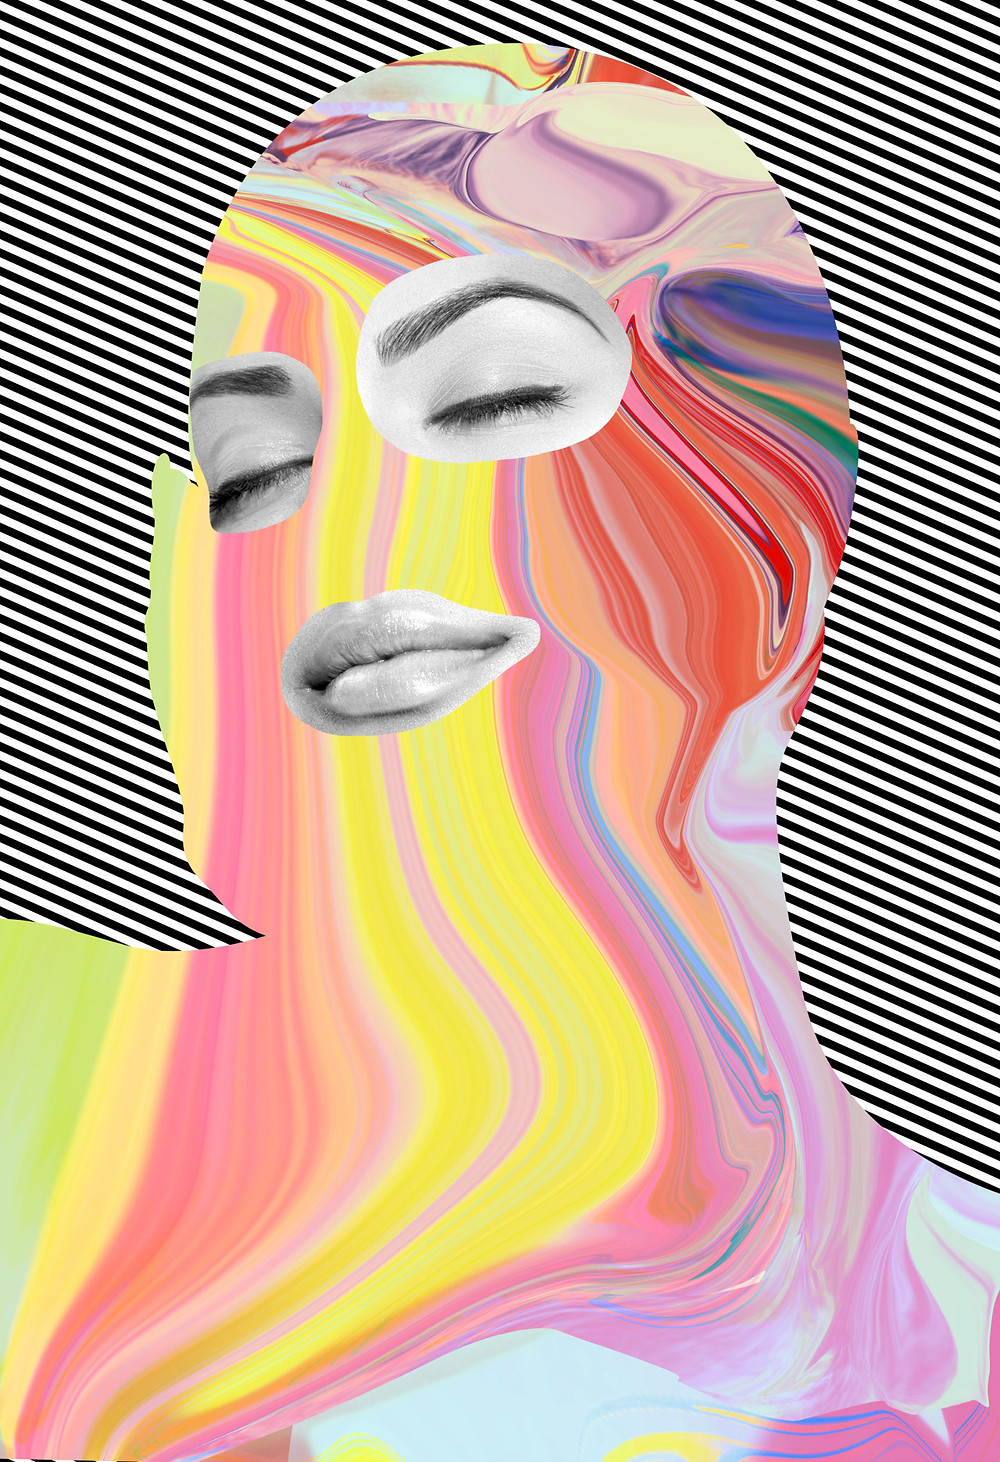 howl magazine, new york, art, interview, tyler spangler, pop art, modern, collage